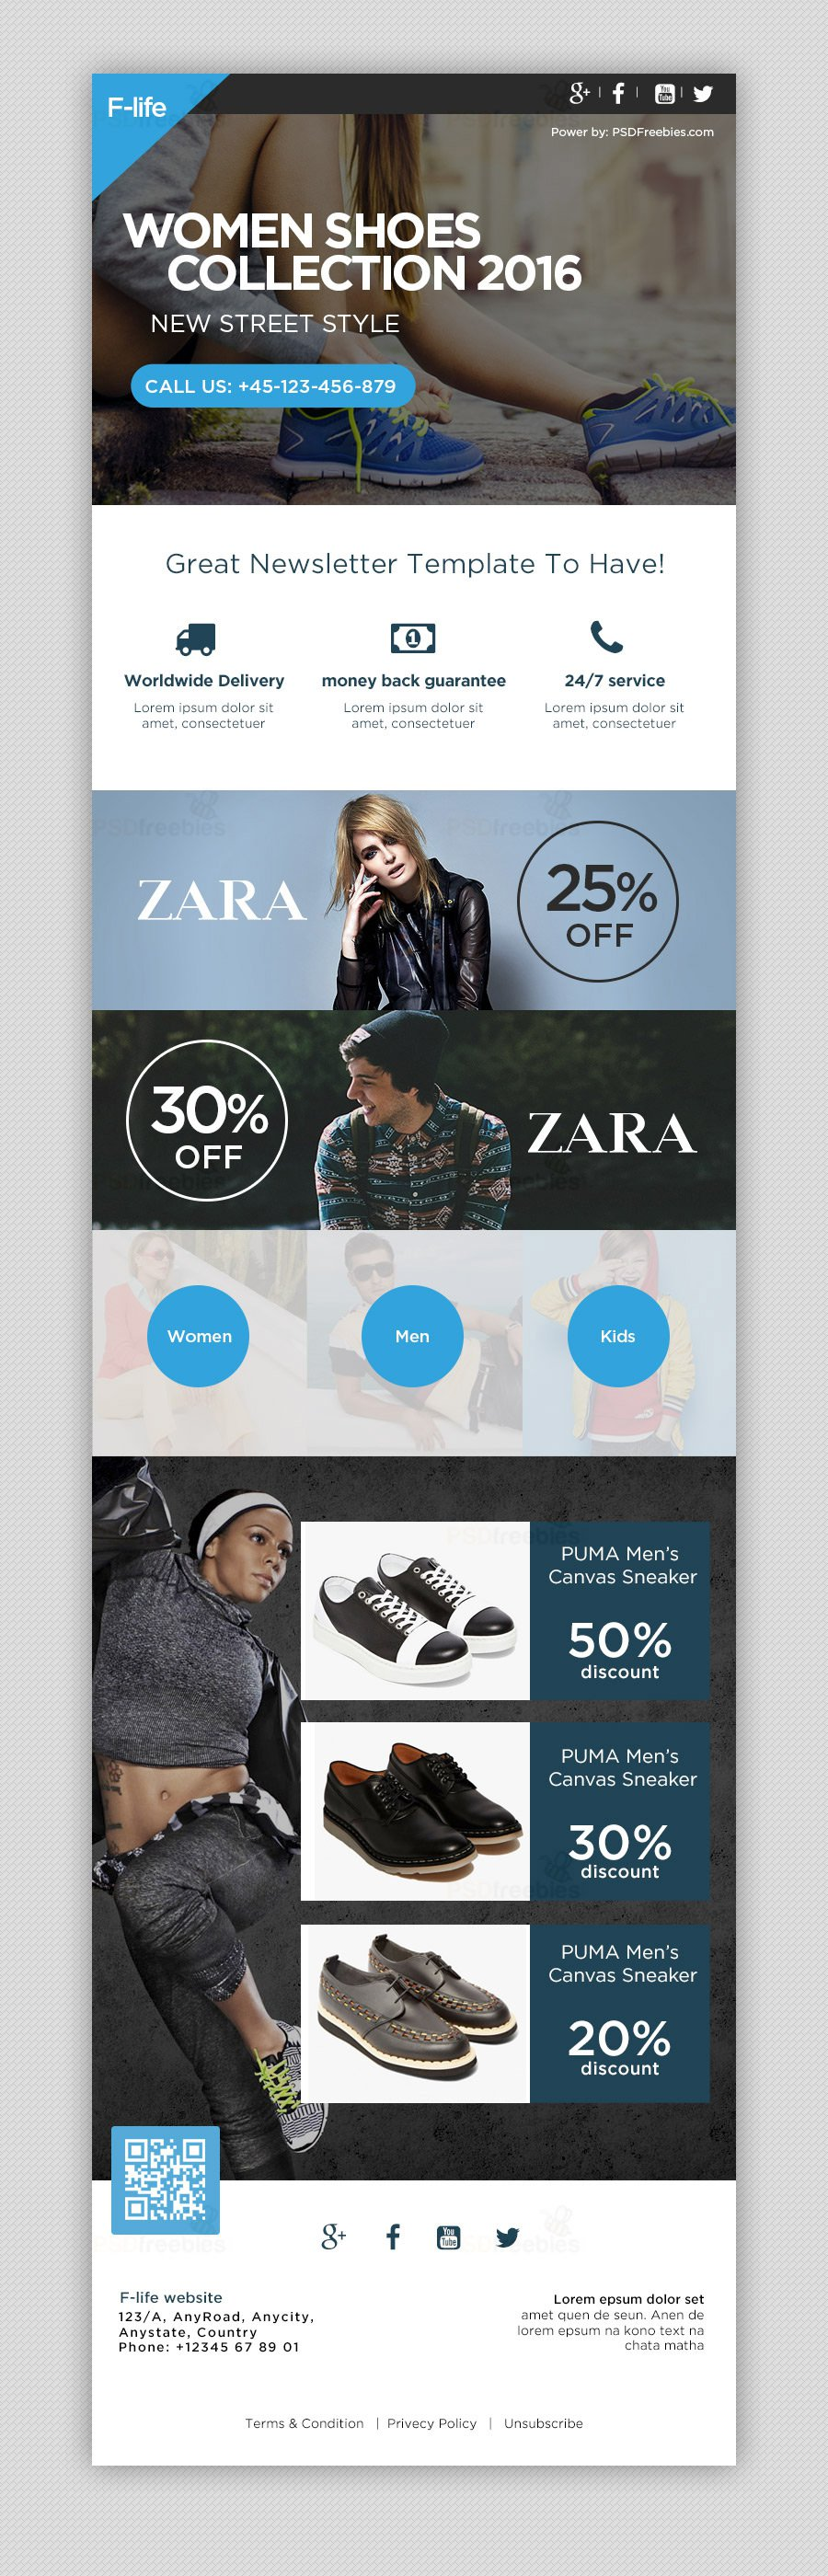 Free email newsletter templates psd css author email marketing free email newsletter templates psd css author pronofoot35fo Choice Image